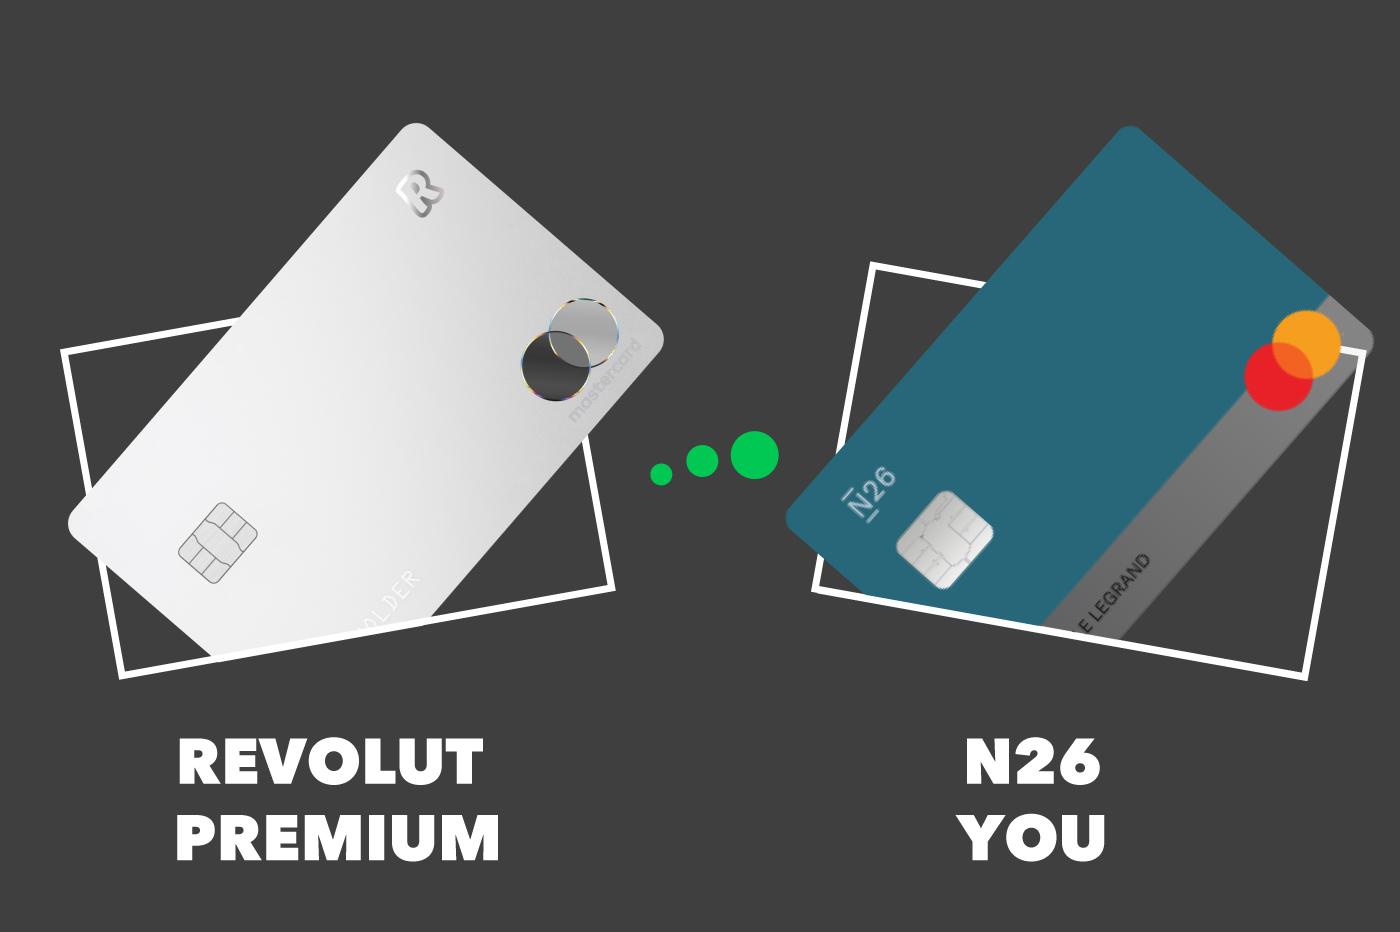 Revolut Premium vs N26 You